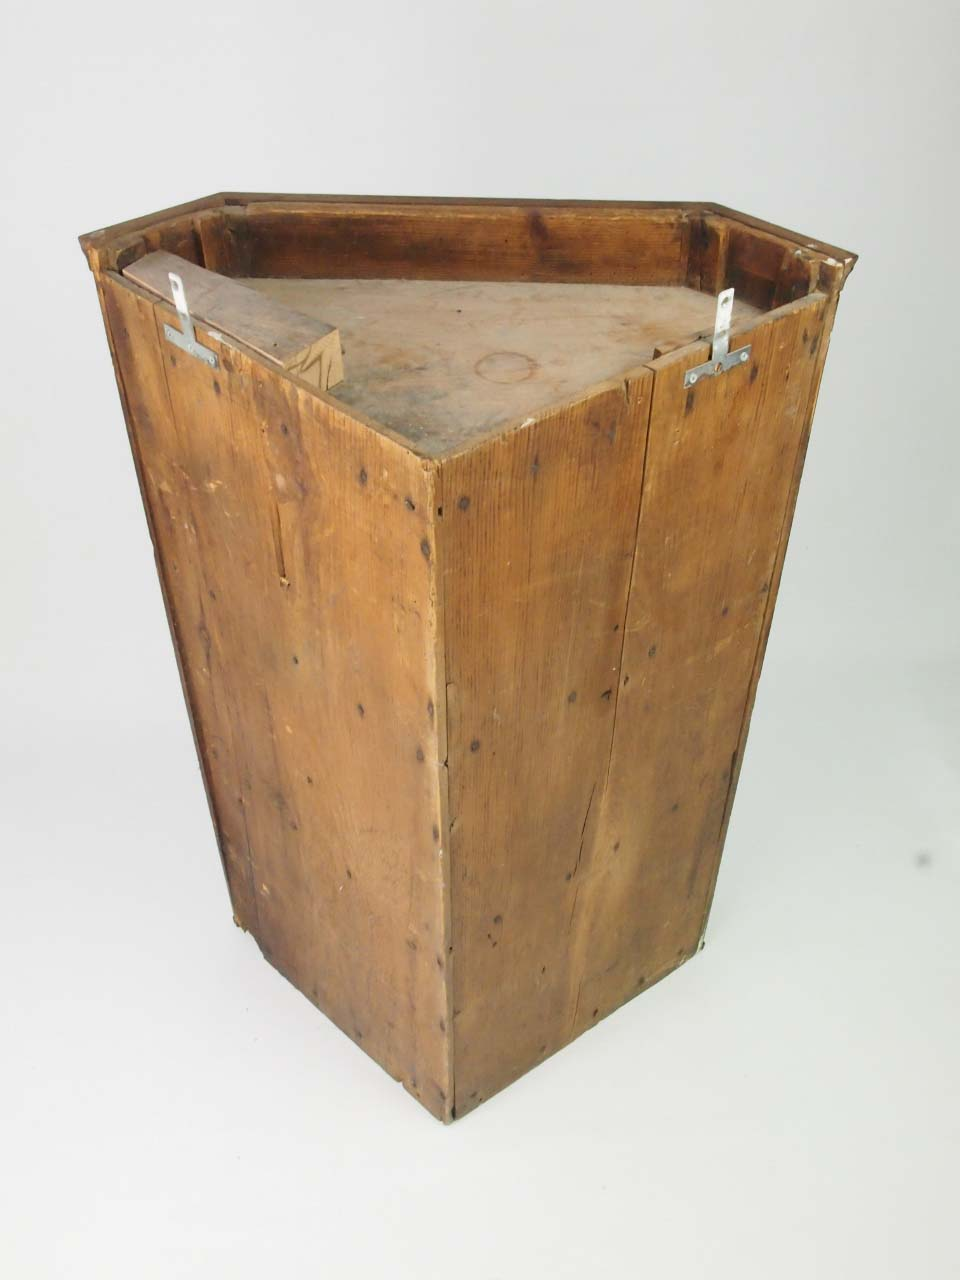 dating antique furniture online A nice selection of primitive antiques available at our shop and online.